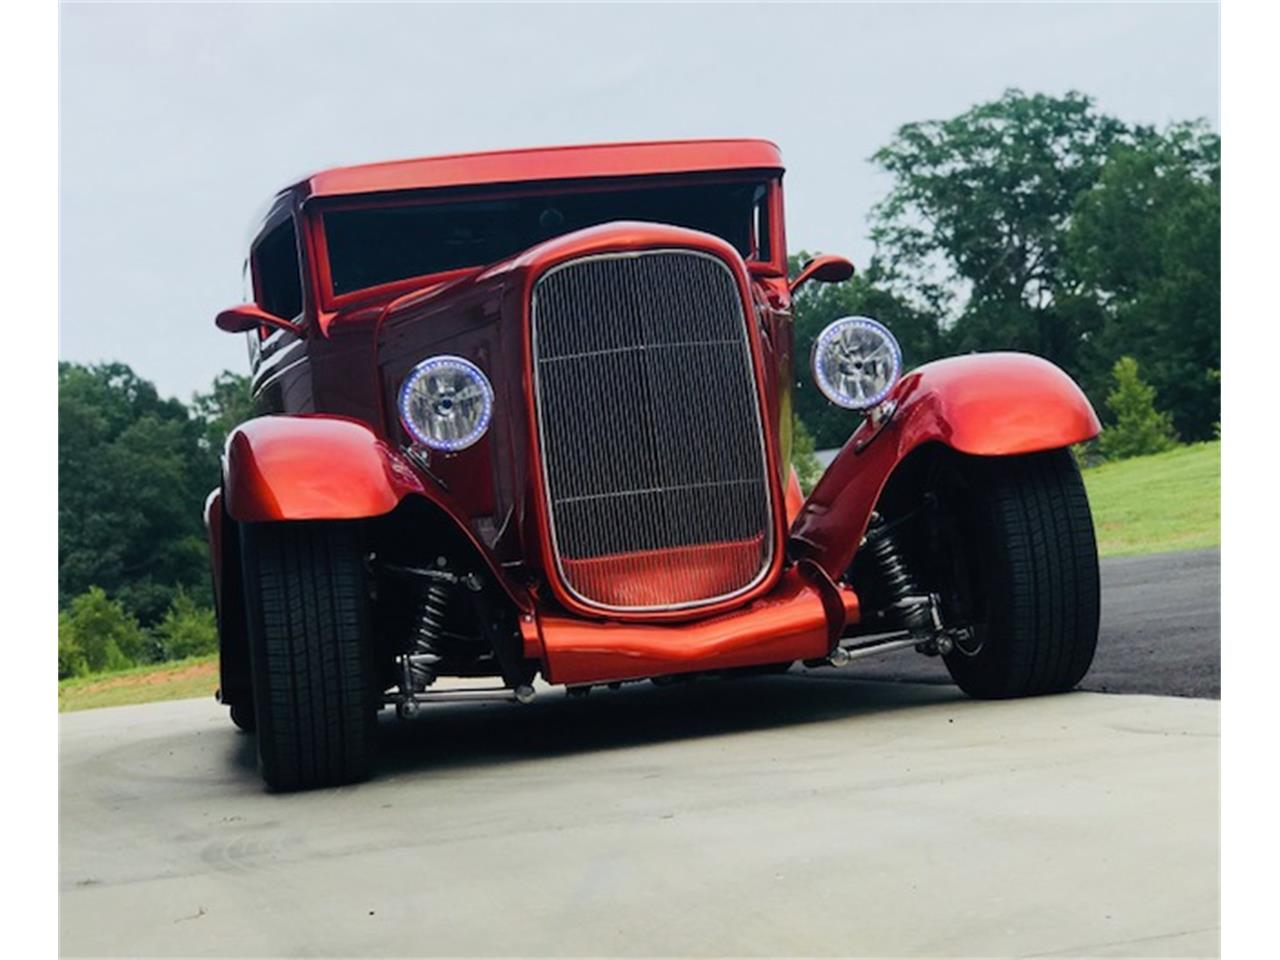 Large Picture of Classic 1930 Ford Street Rod located in Ninety Six South Carolina - $39,995.00 Offered by a Private Seller - OB6L